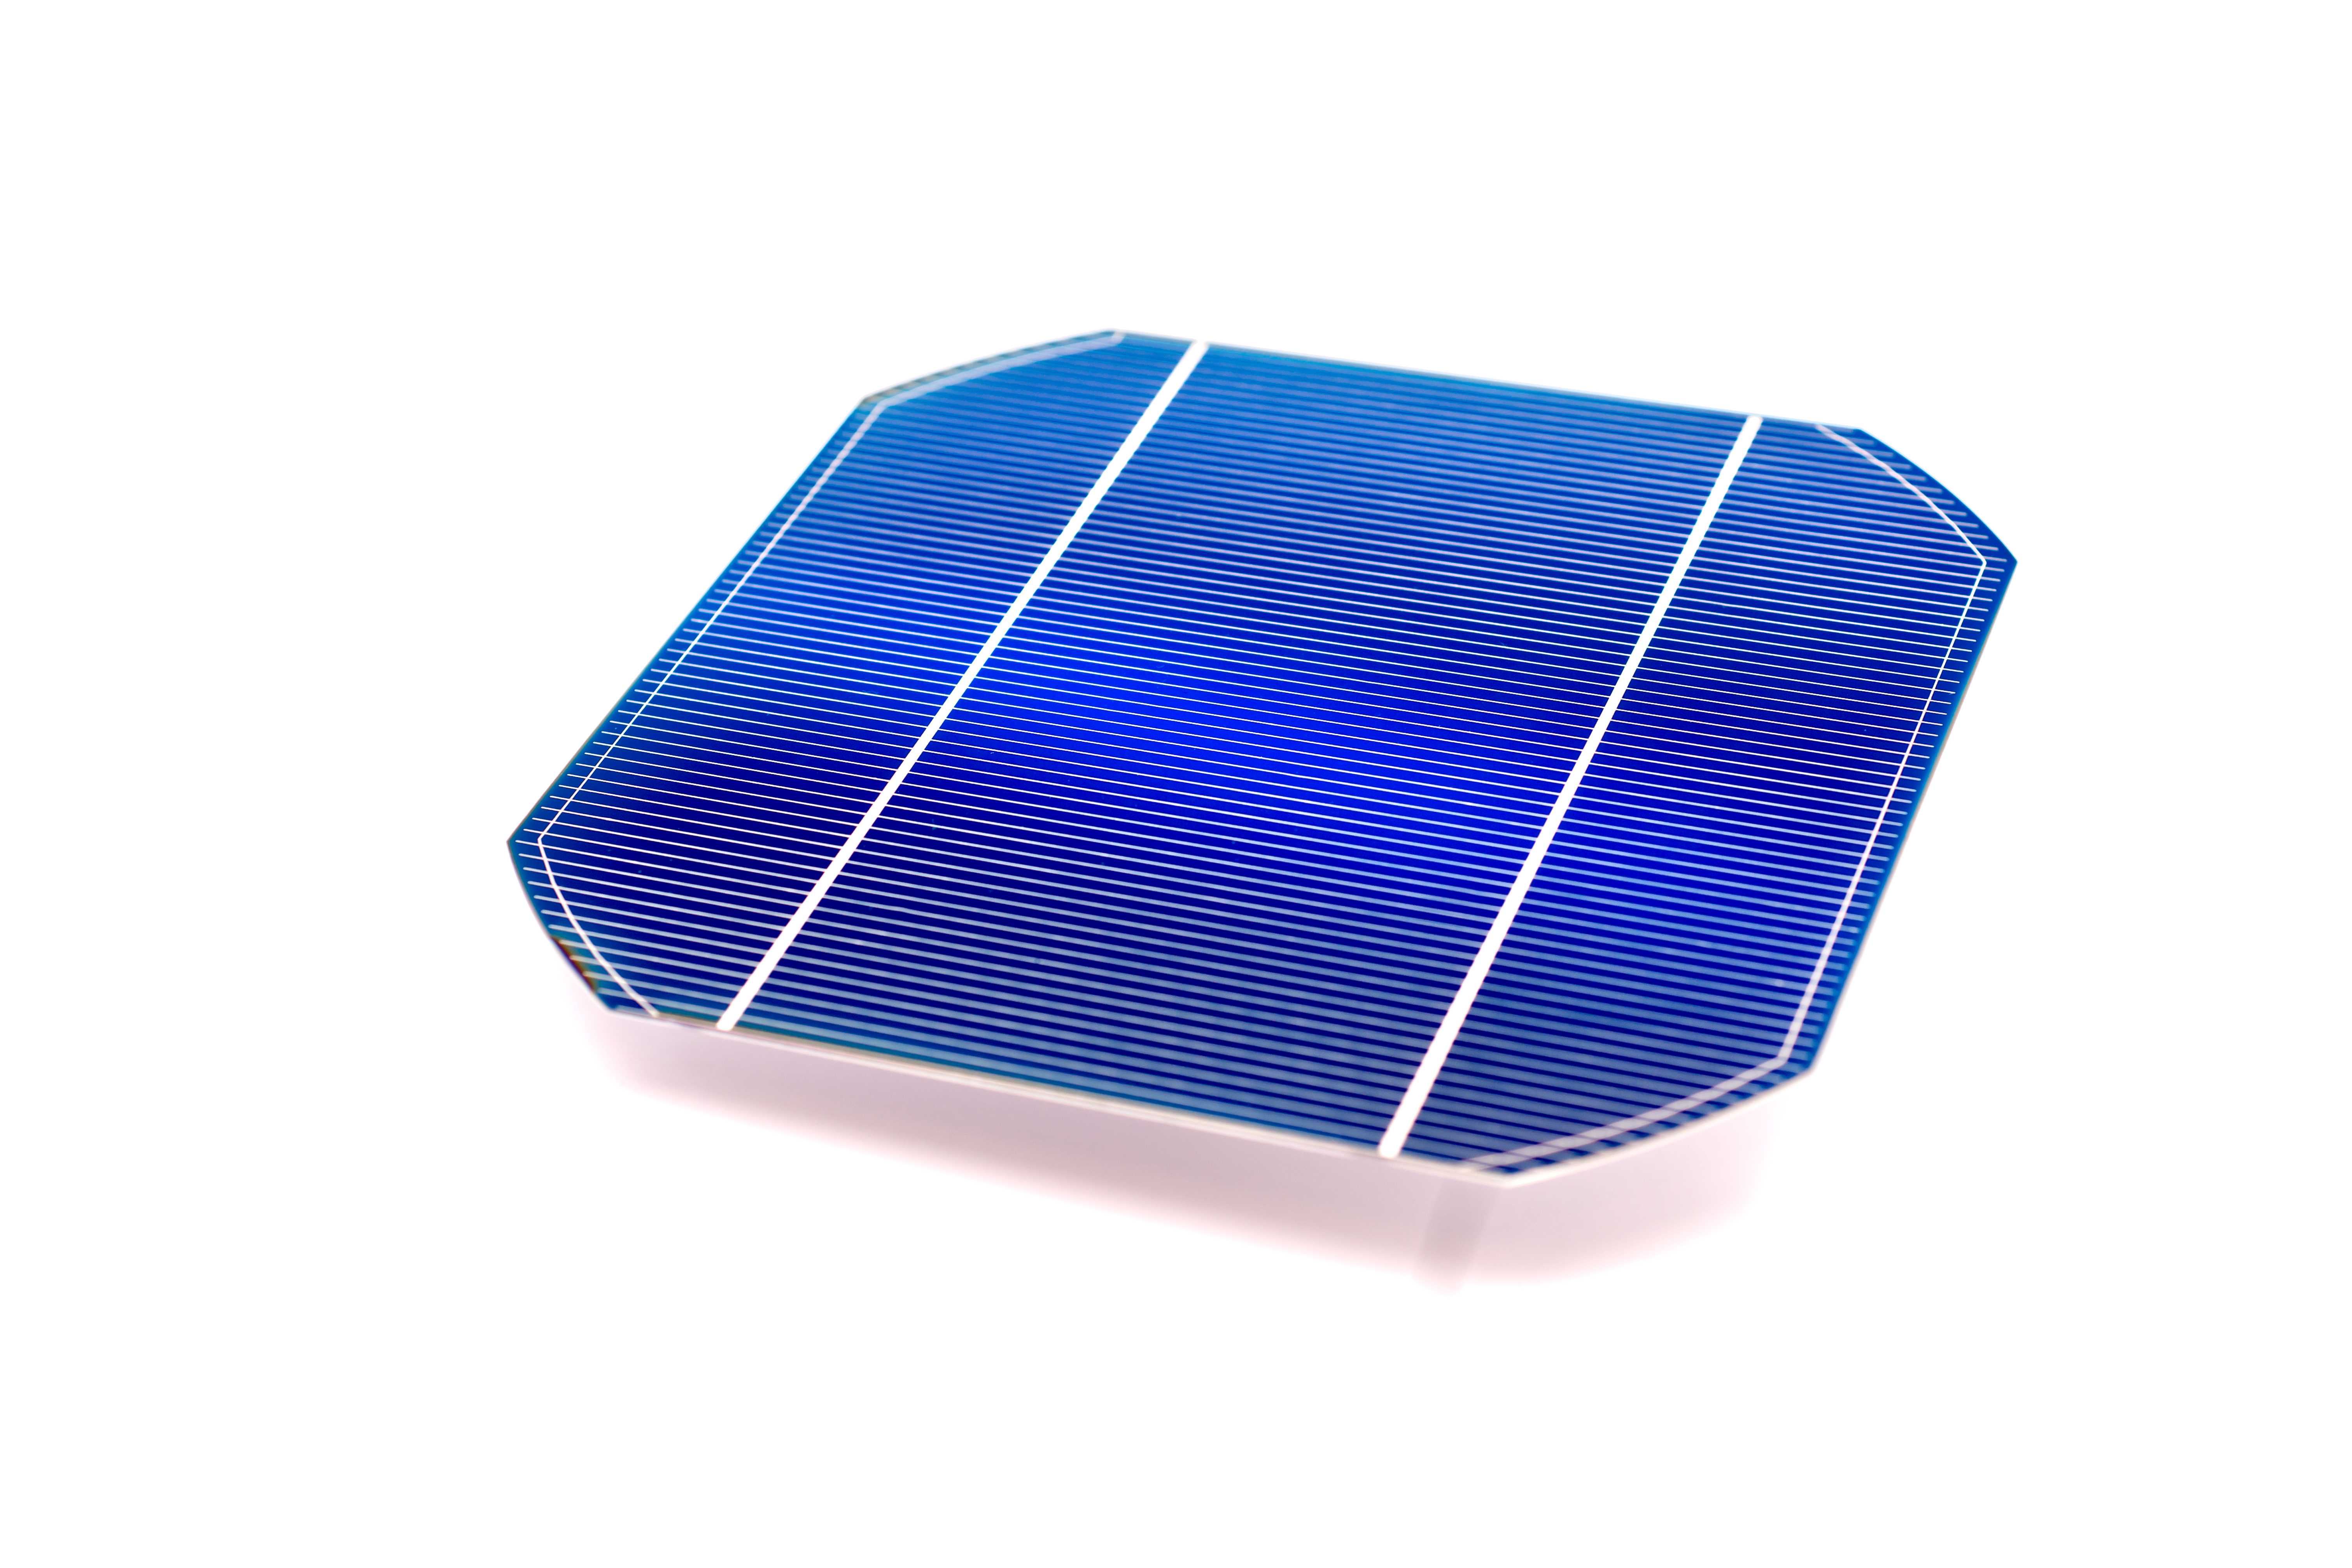 Imec's industrial-level silicon solar cells exceed 20% efficiency